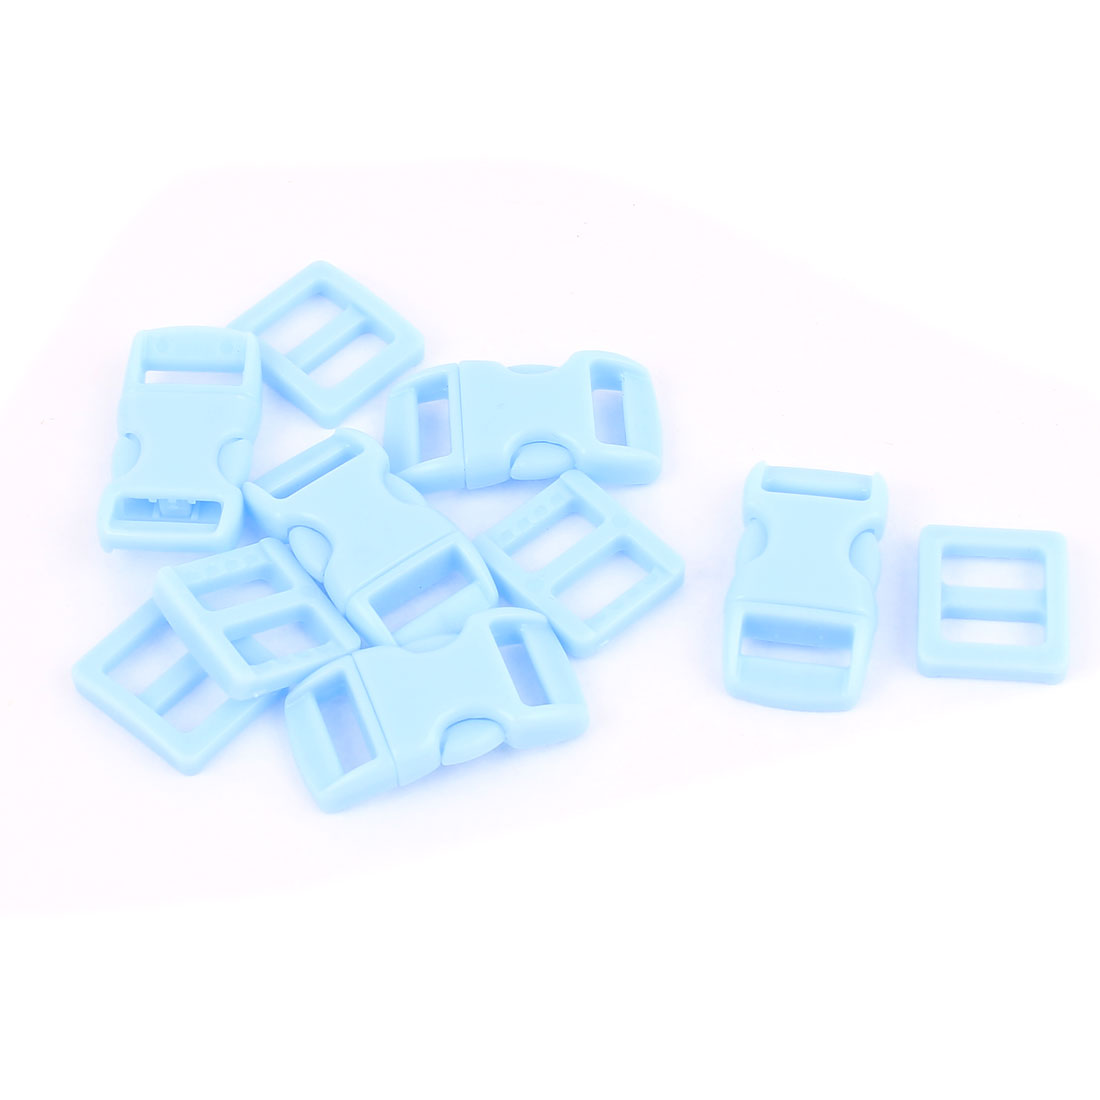 5pcs Sky Blue 10-11mm Webbing Strap Plastic Curved Clasp Side Quick Release Buckles